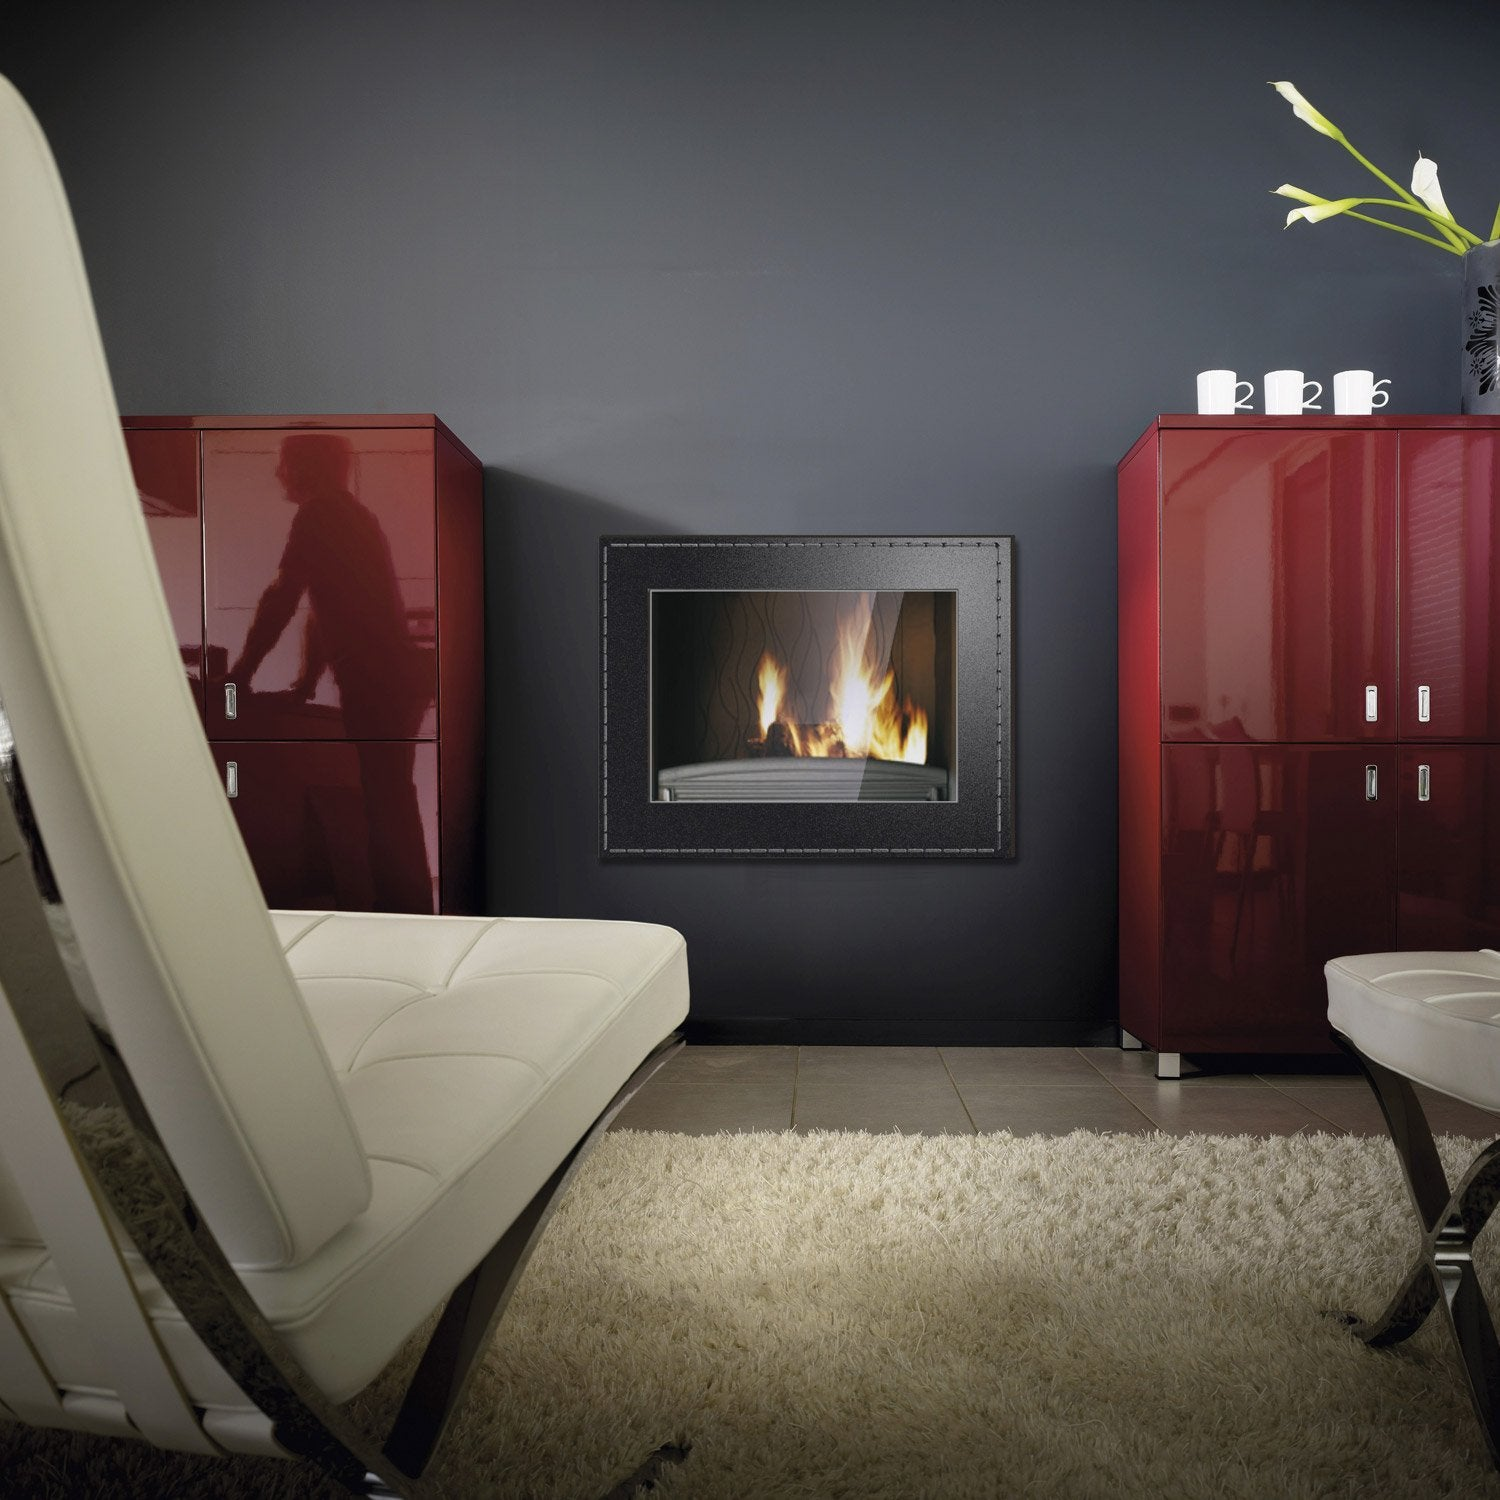 po le bois encastrable invicta cuir 800 6581 44 14 0 kw leroy merlin. Black Bedroom Furniture Sets. Home Design Ideas